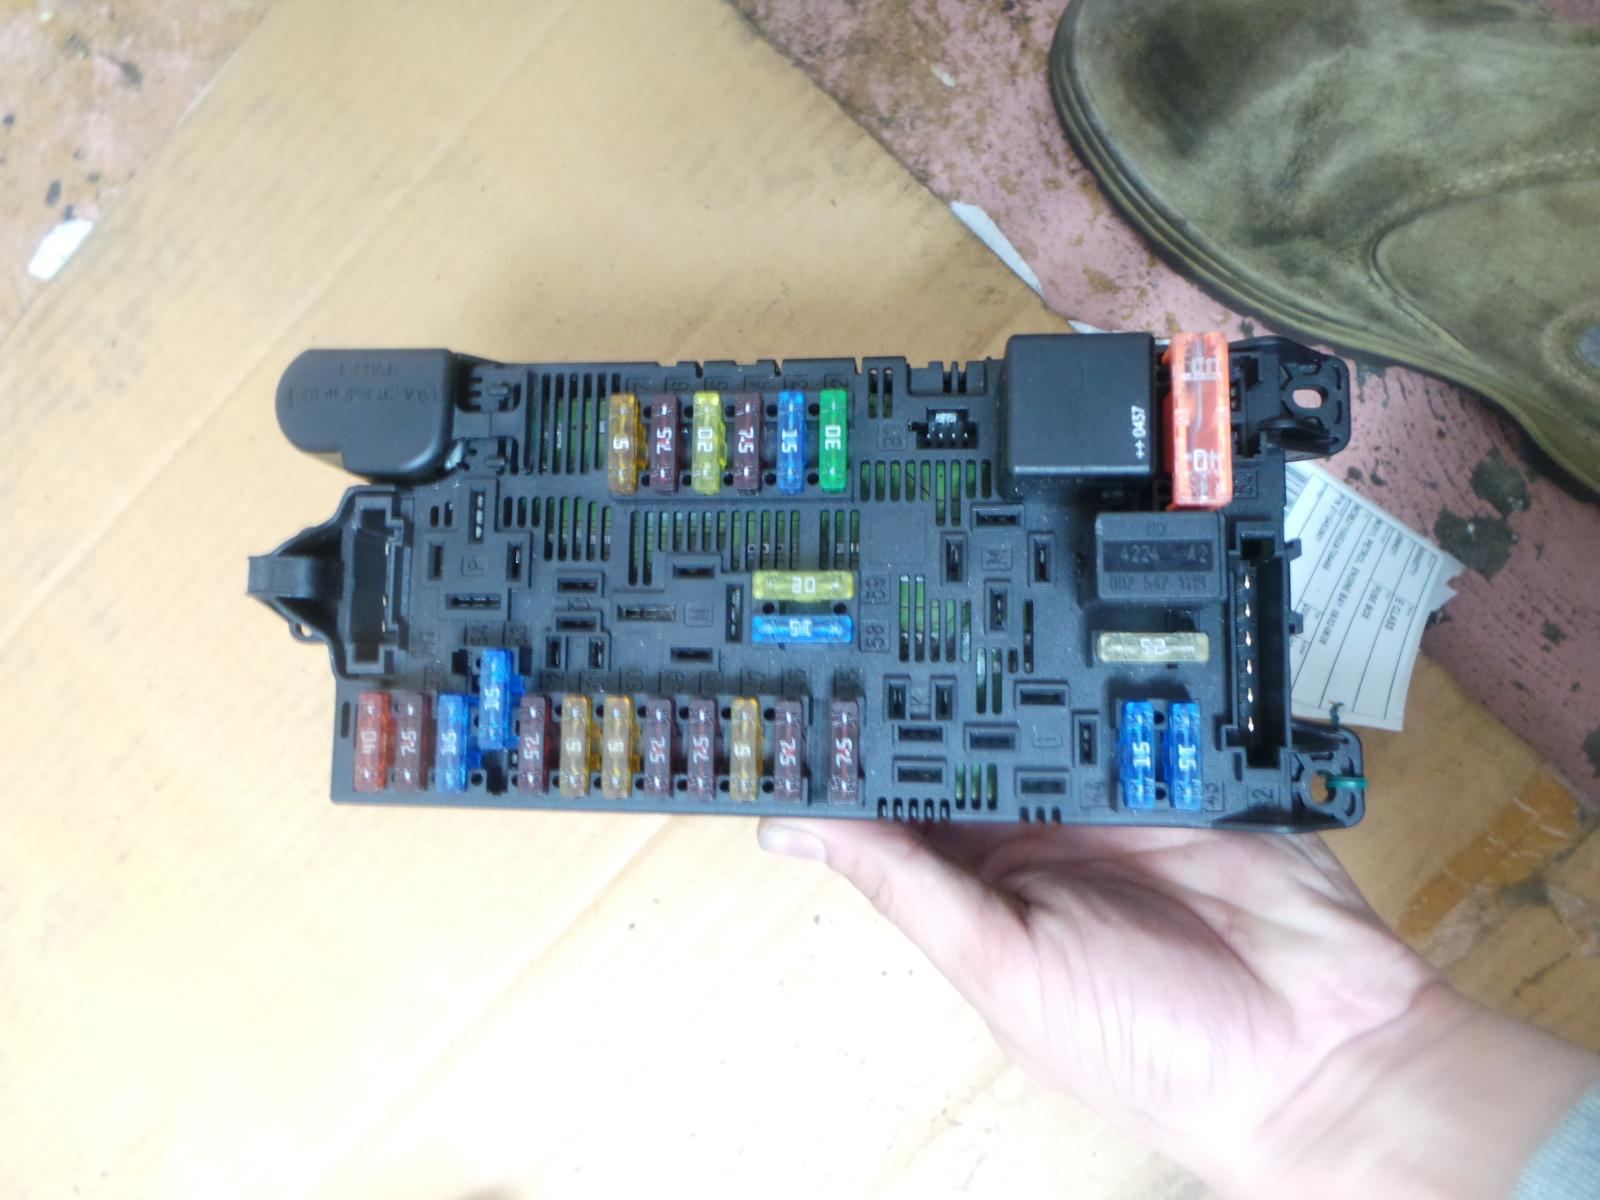 details about mercedes e class fuse box w211, petrol, engine bay, 09 02 08 09 p n 2115453901 W211 E550